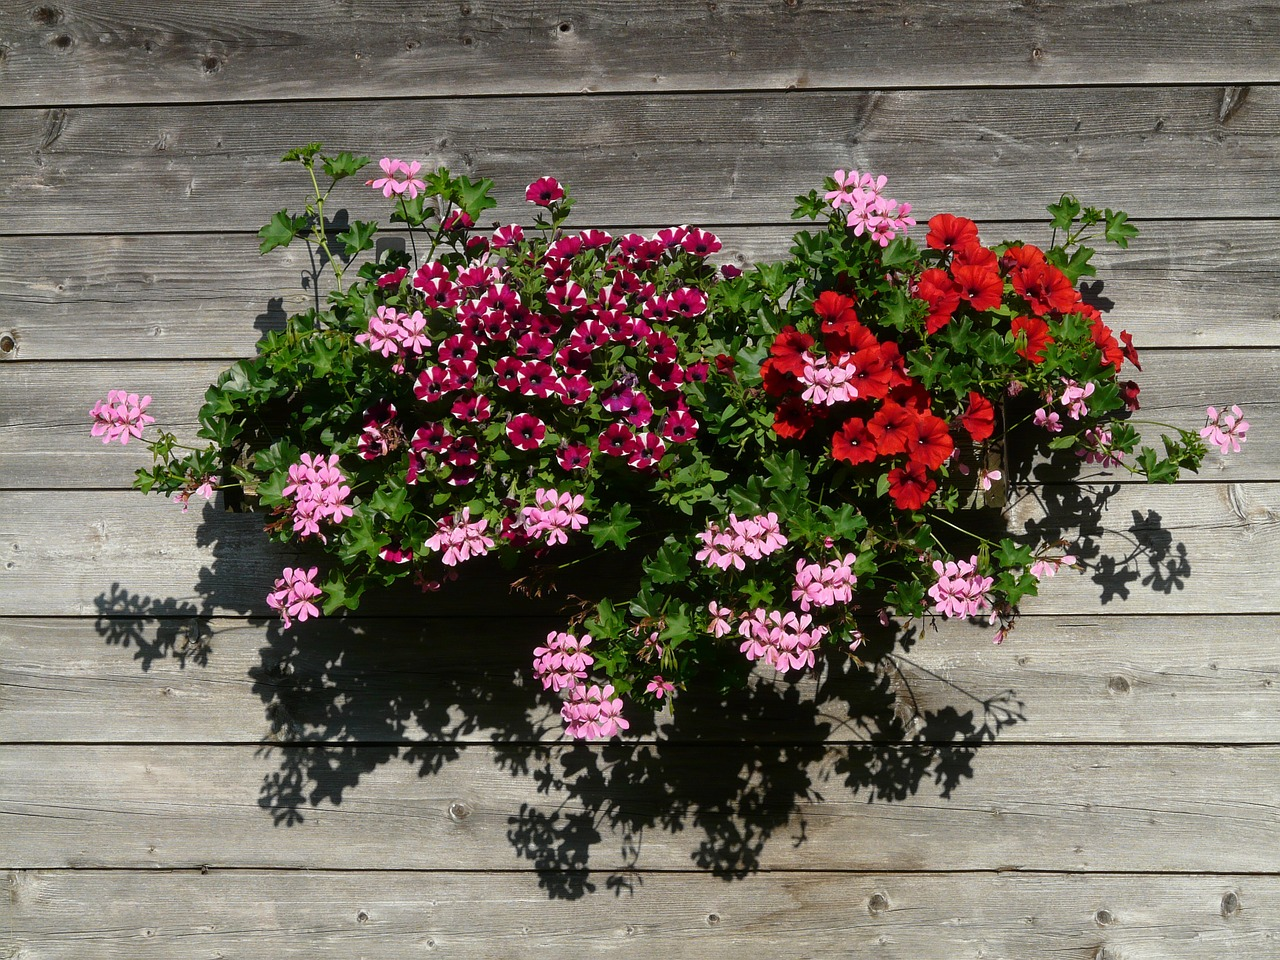 geranium balcony plant ornamental plant free photo